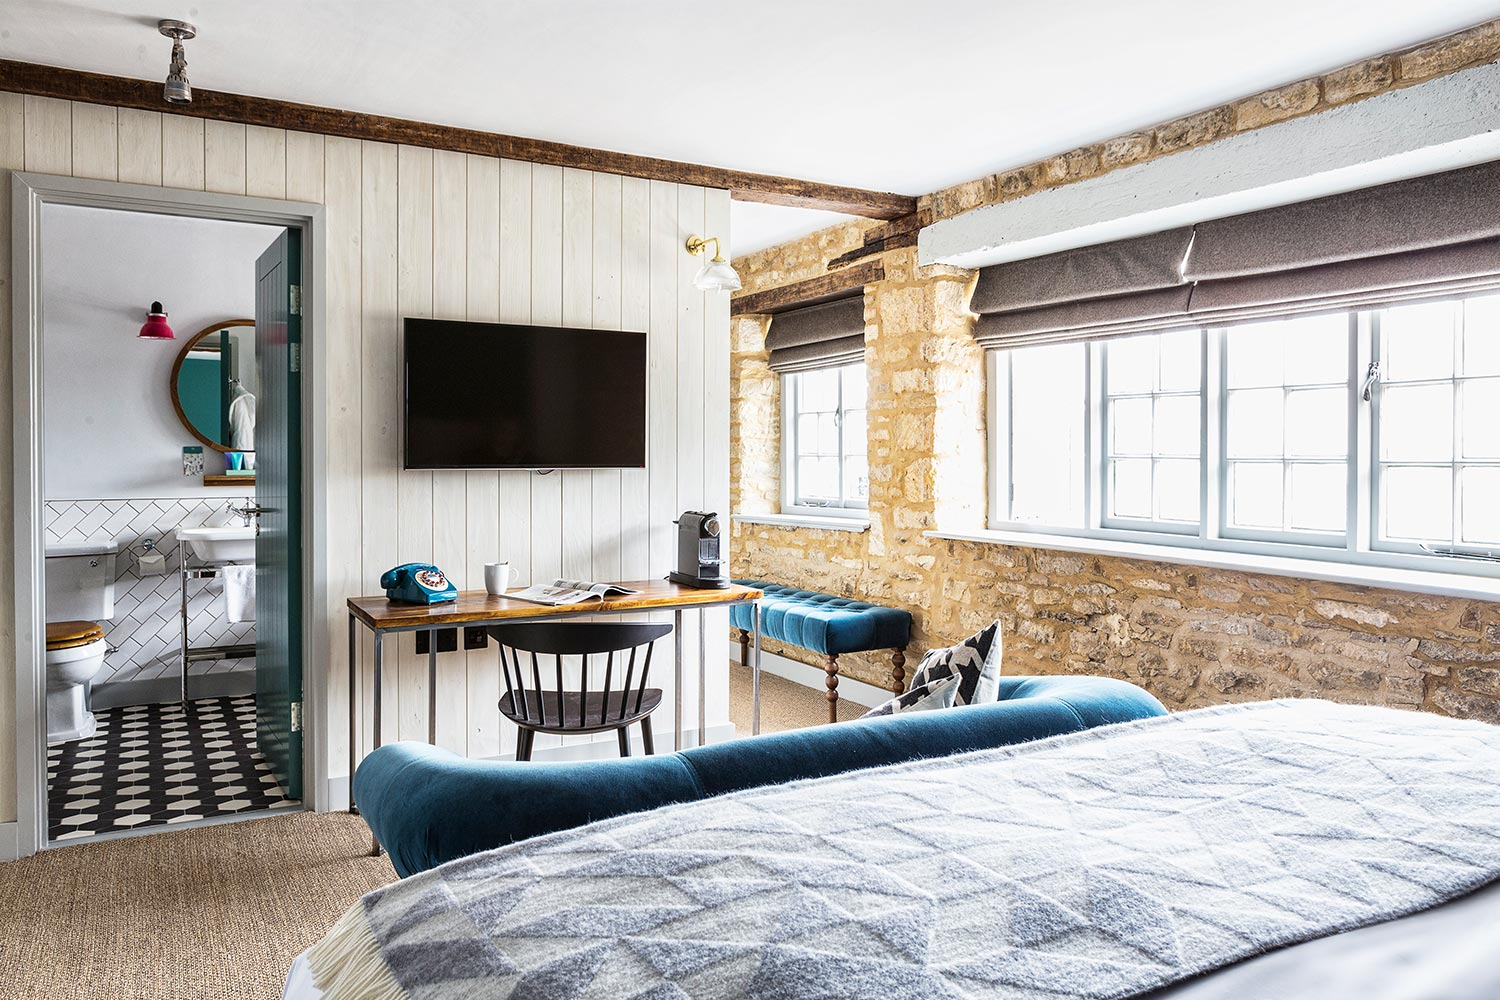 Boutique hotel photography for The Old Stocks Inn by Mighty, hotel marketing agency